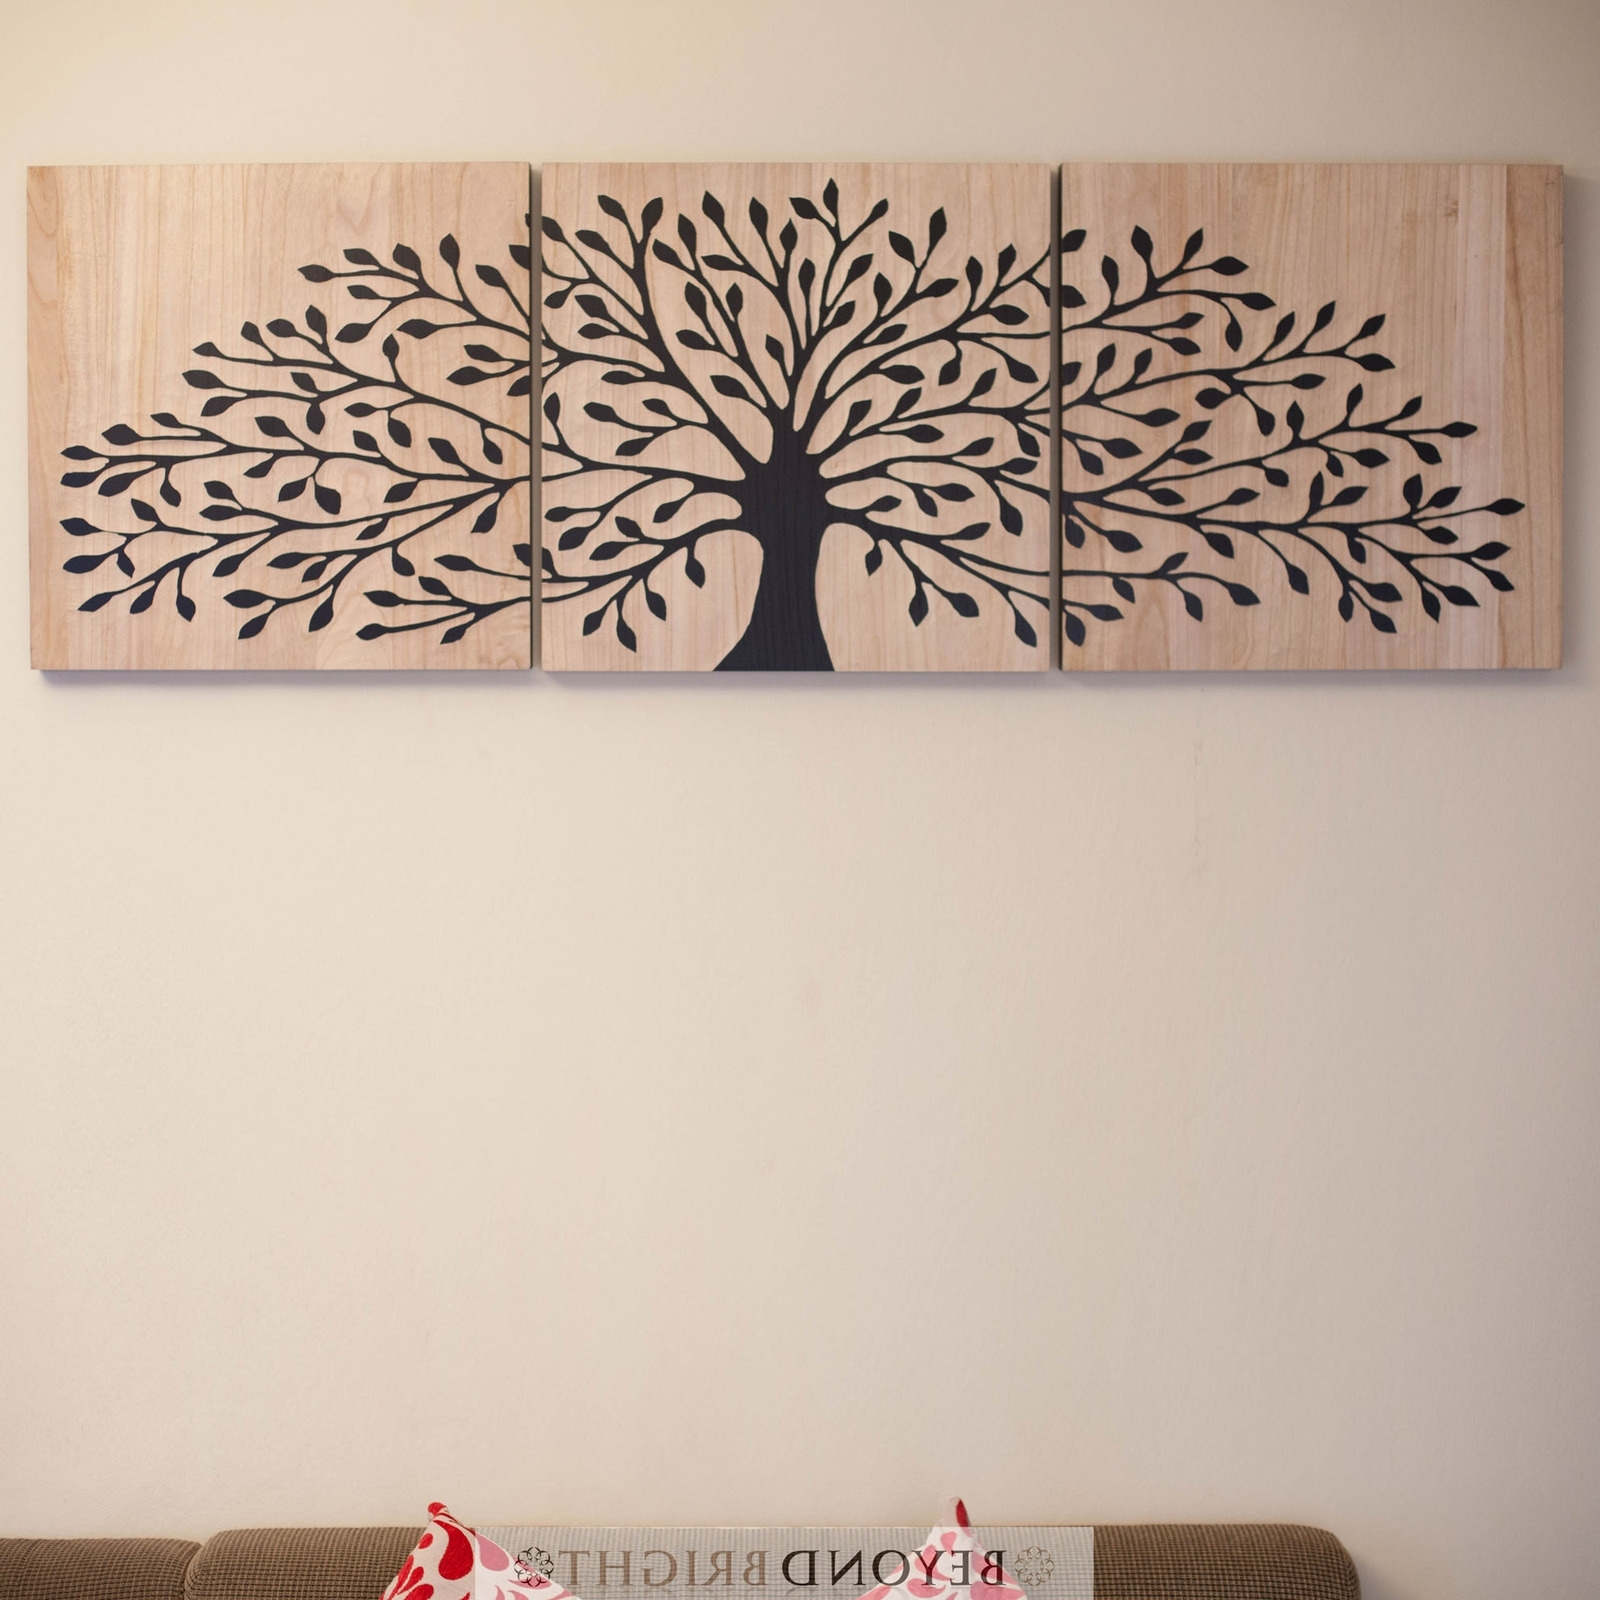 Tree Of Life Wooden Timber Carved Wall Art Blck Mangowood Carving Throughout Most Recently Released Tree Of Life Wall Art (View 14 of 15)